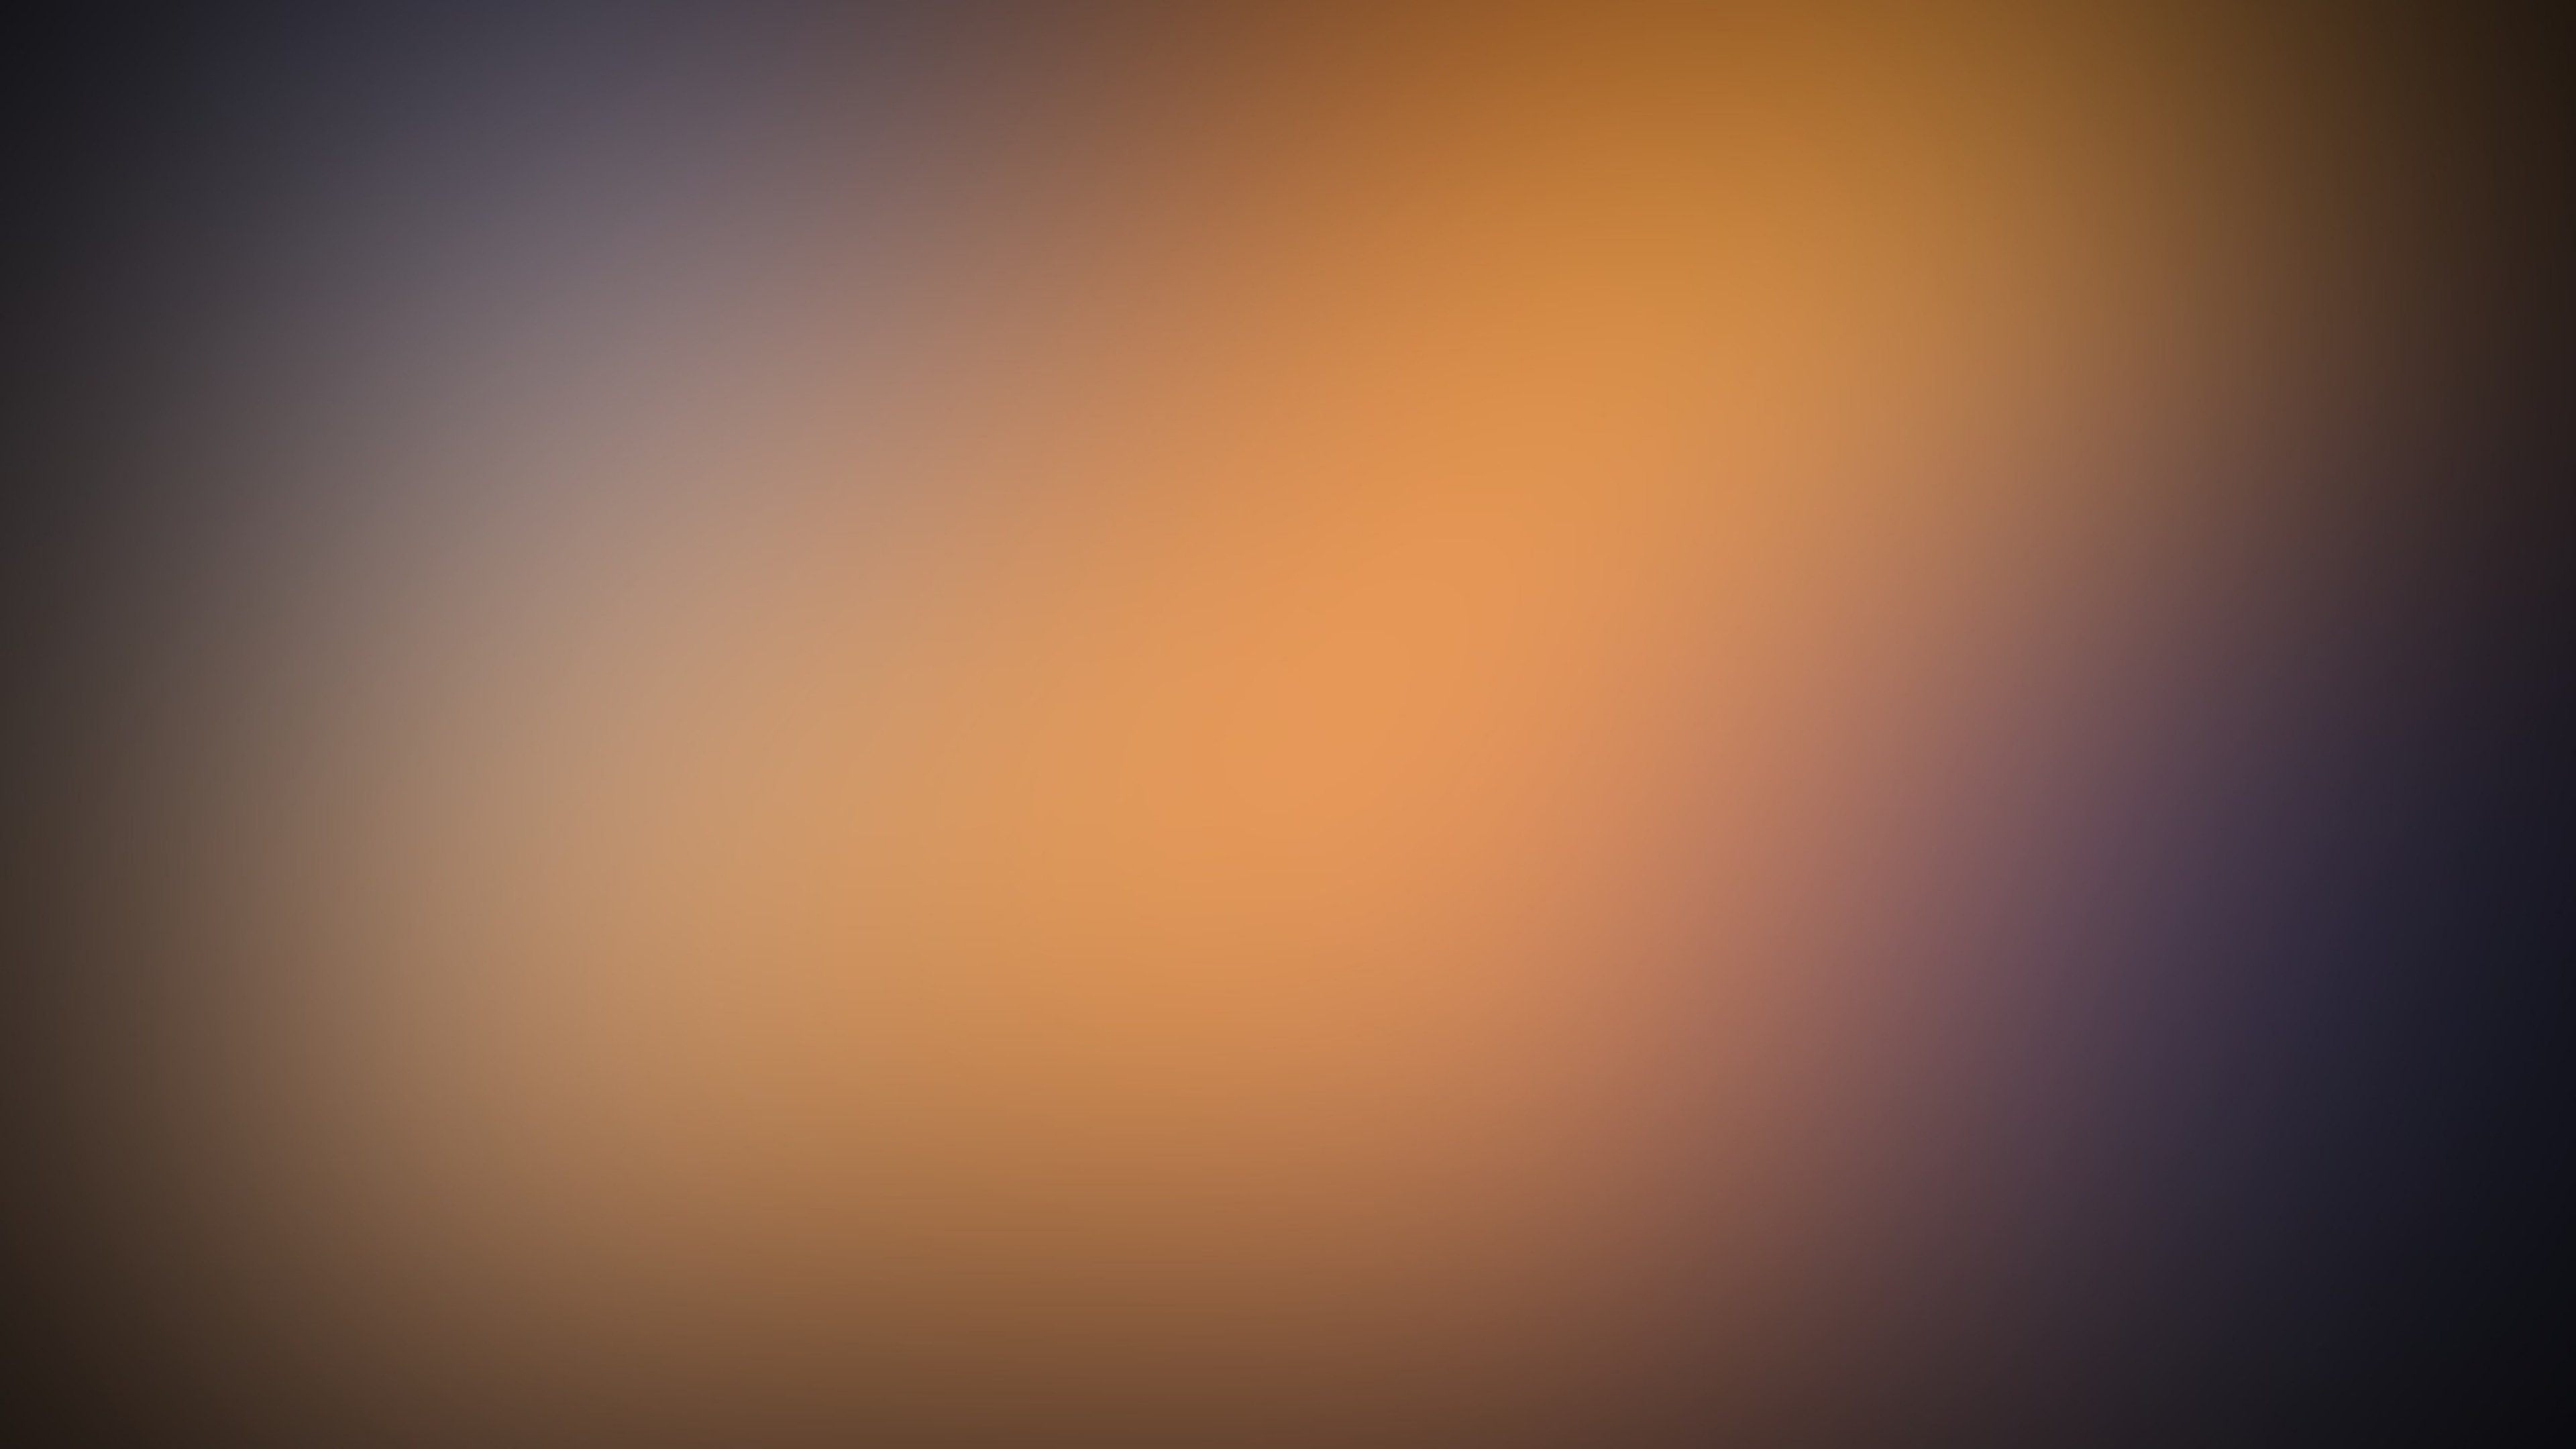 Gaussian Orange Minimalism Depth Wallpaper Background 4K Ultra HD 3840x2160